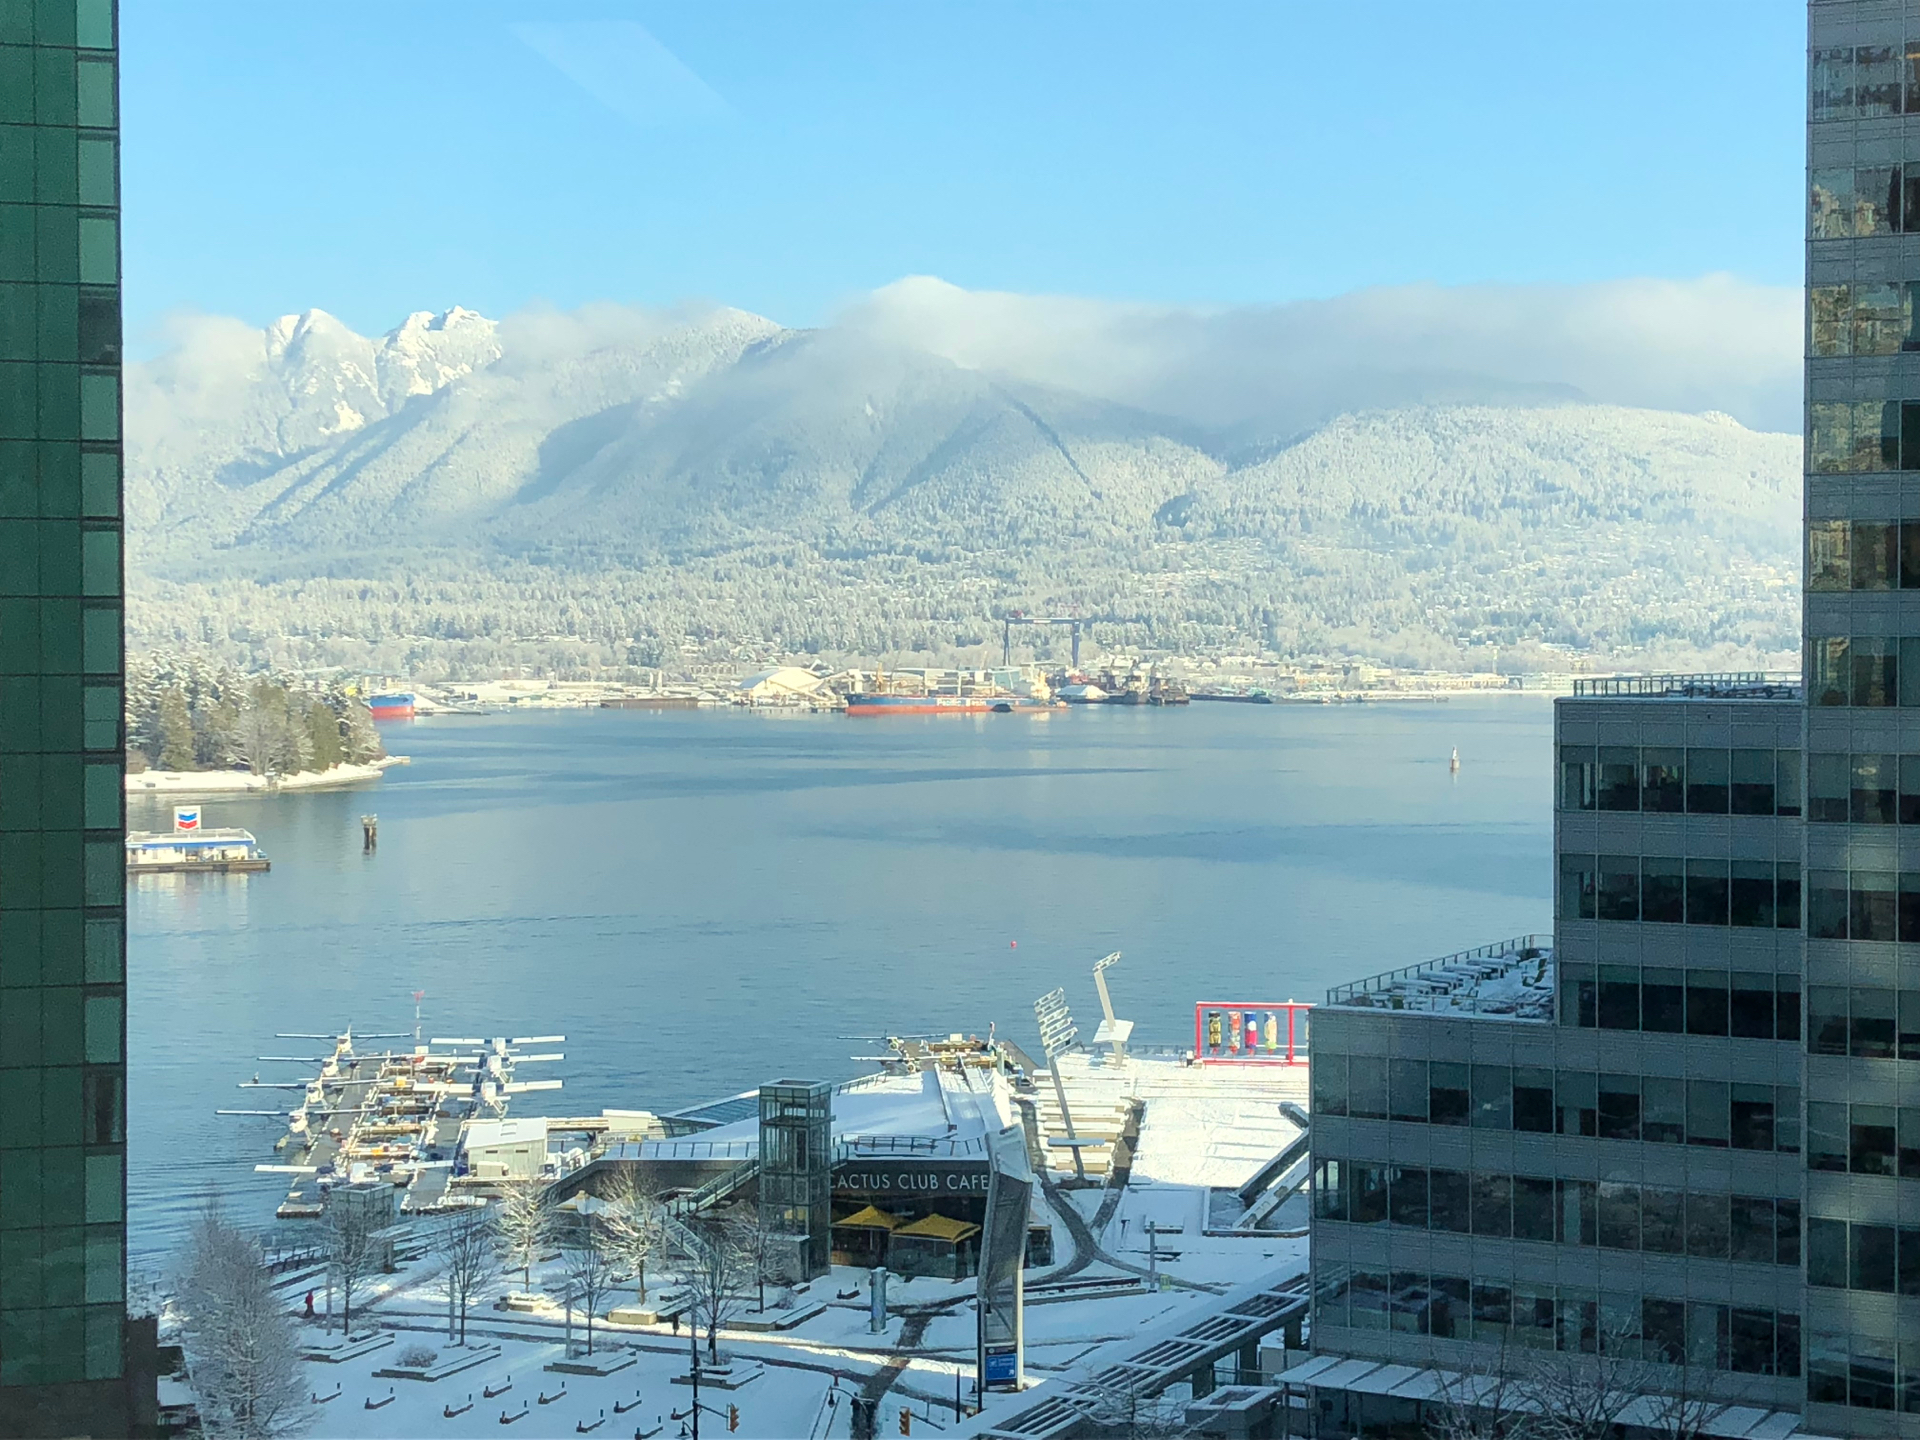 Every once in a while, you get a clear day after the snow, and this city looks spectacular. Justine took this picture of the north shore mountains from her office.